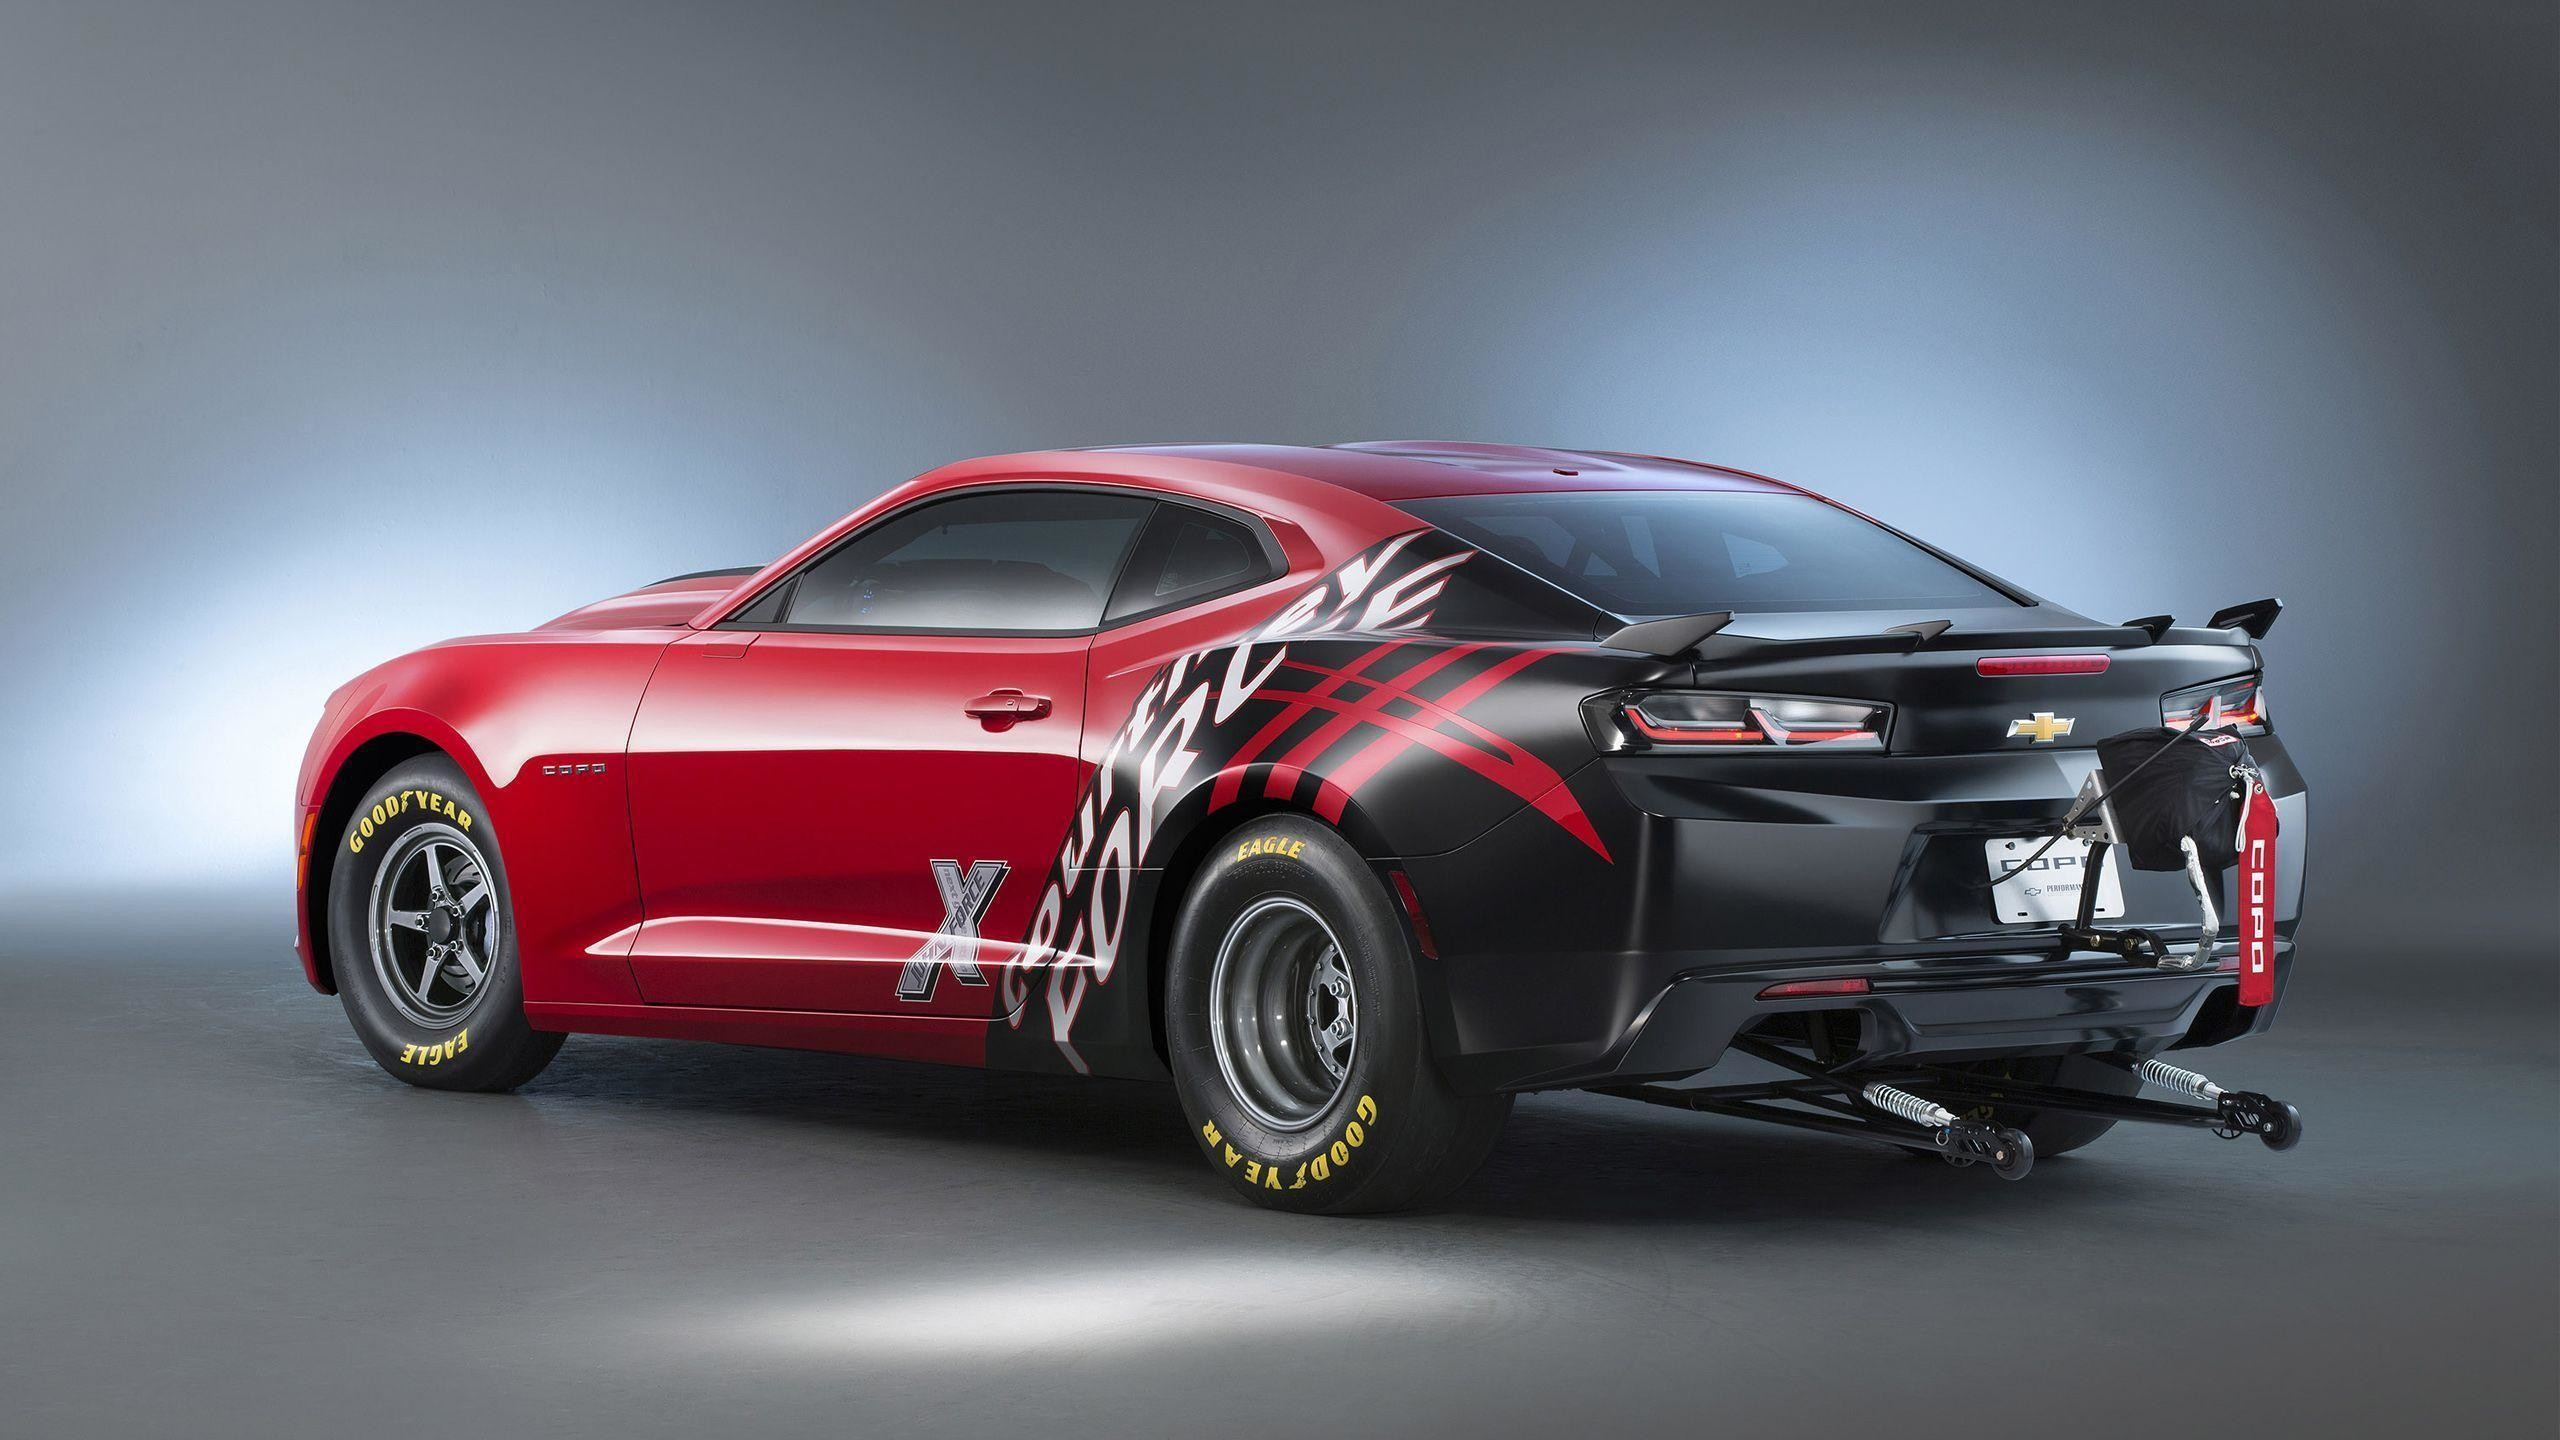 2016 Chevrolet Copo Camaro Wallpapers, Download Free HD Wallpapers